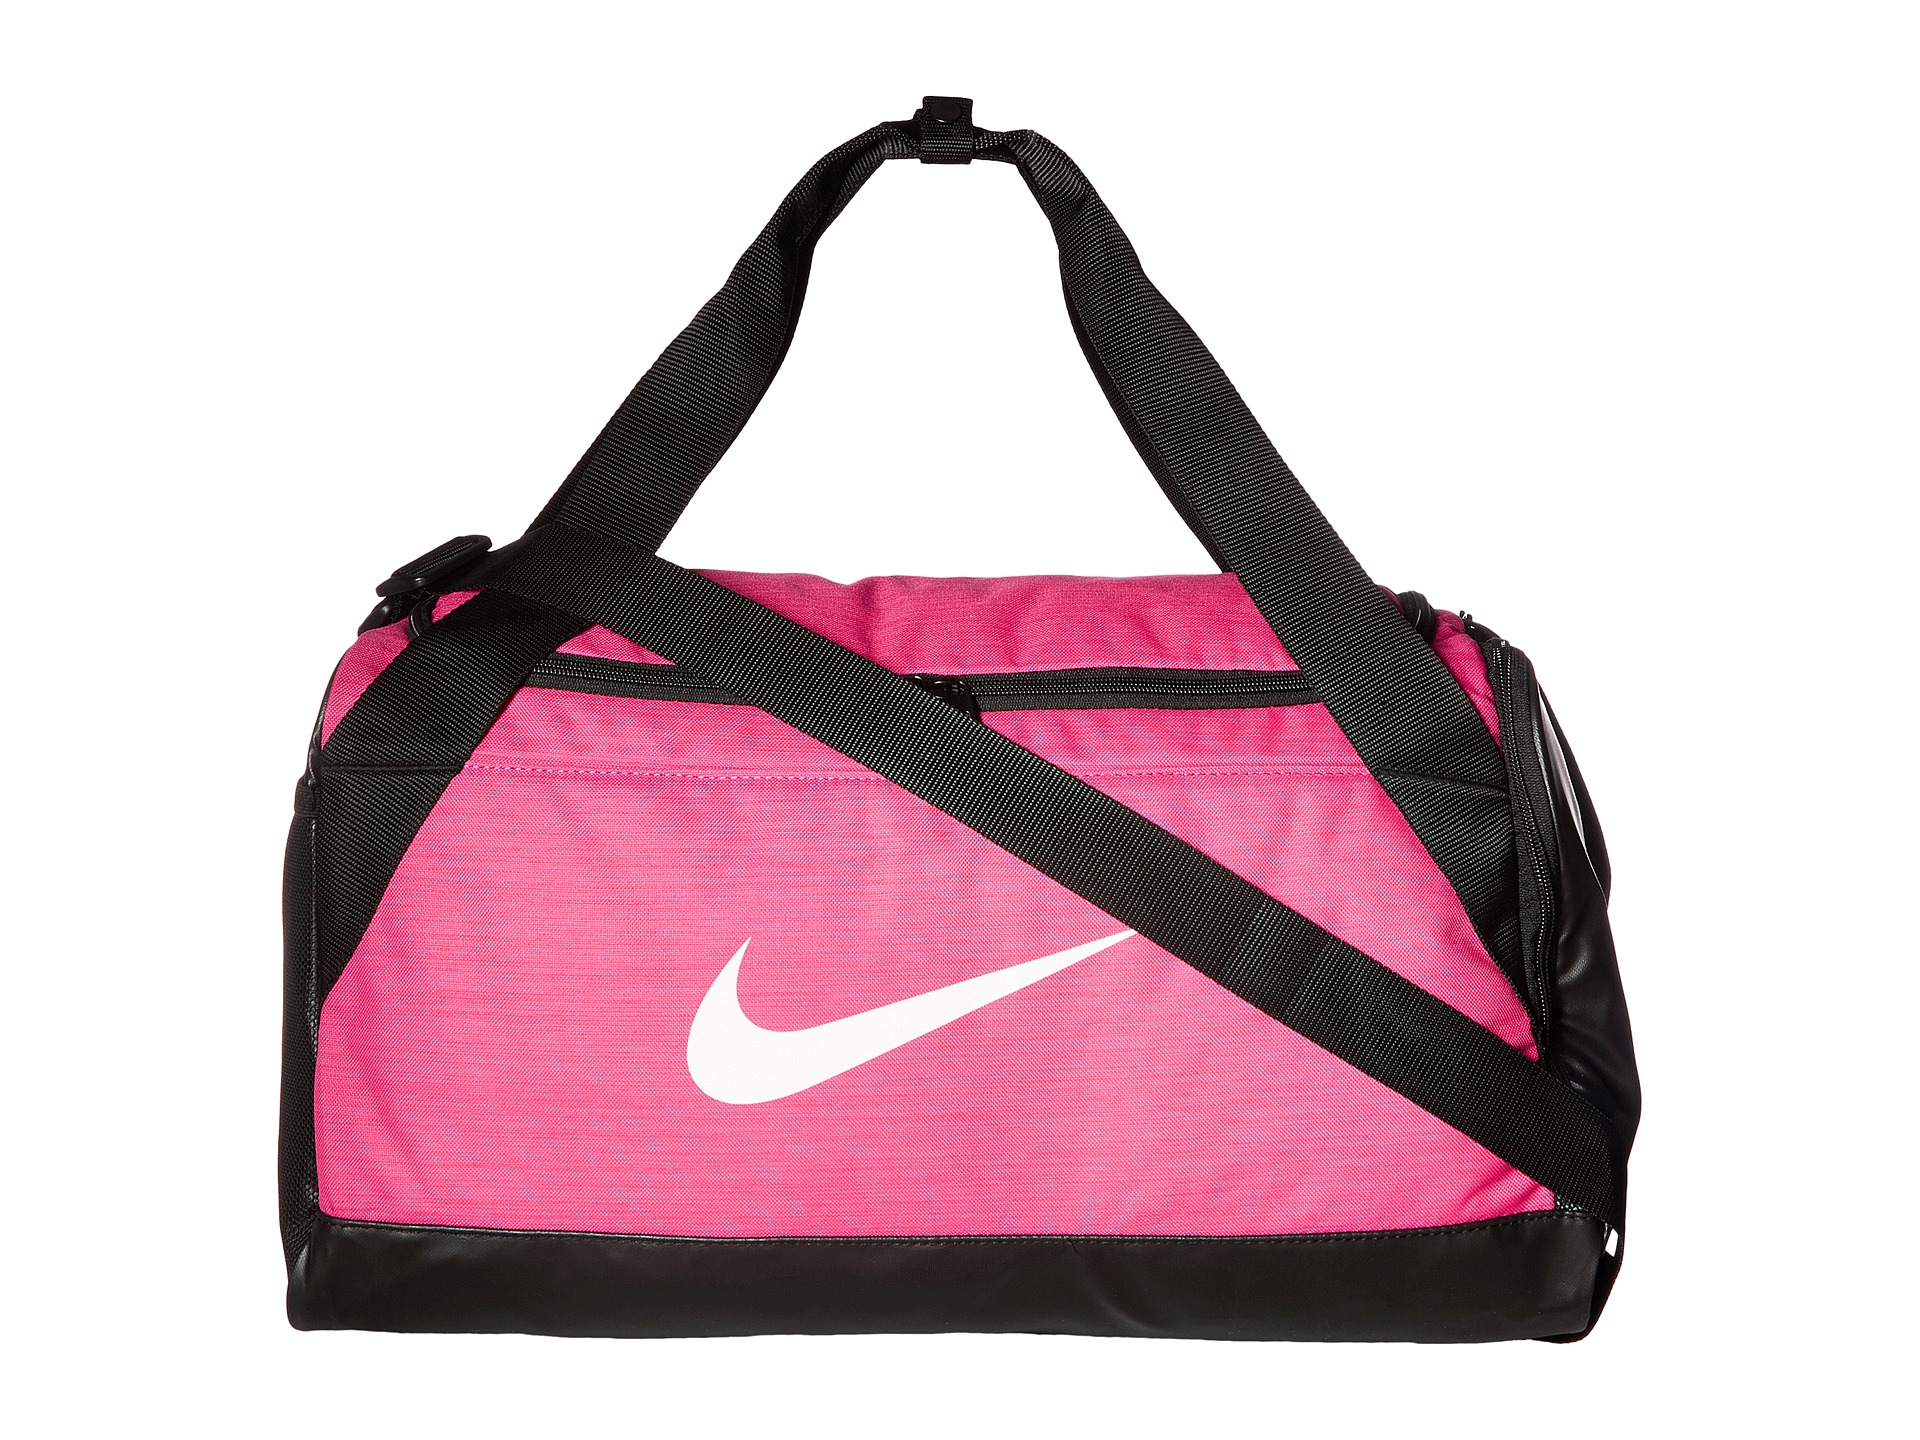 Creative Nike New Duffel Small At Zappos.com